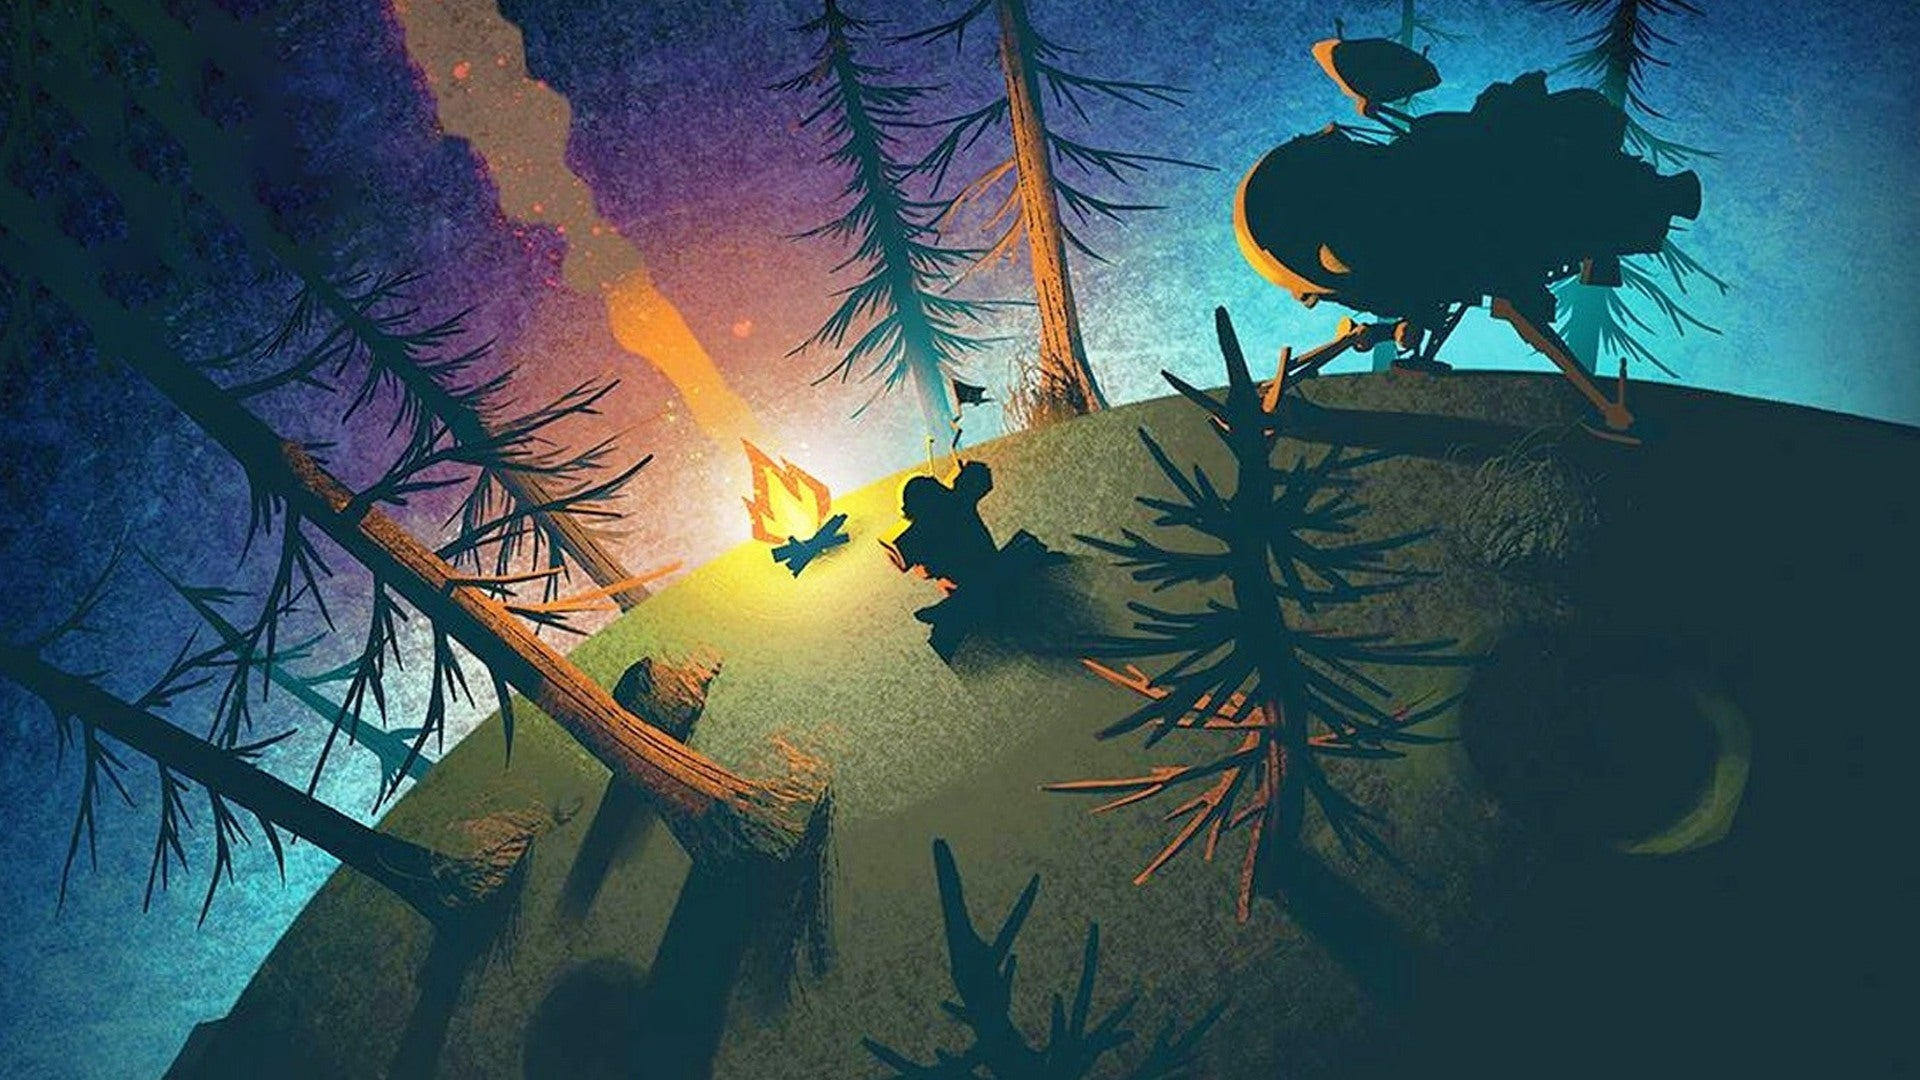 outer wilds 1621905161827.jpeg?width=640&fit=bounds&height=480&quality=20&dpr=0